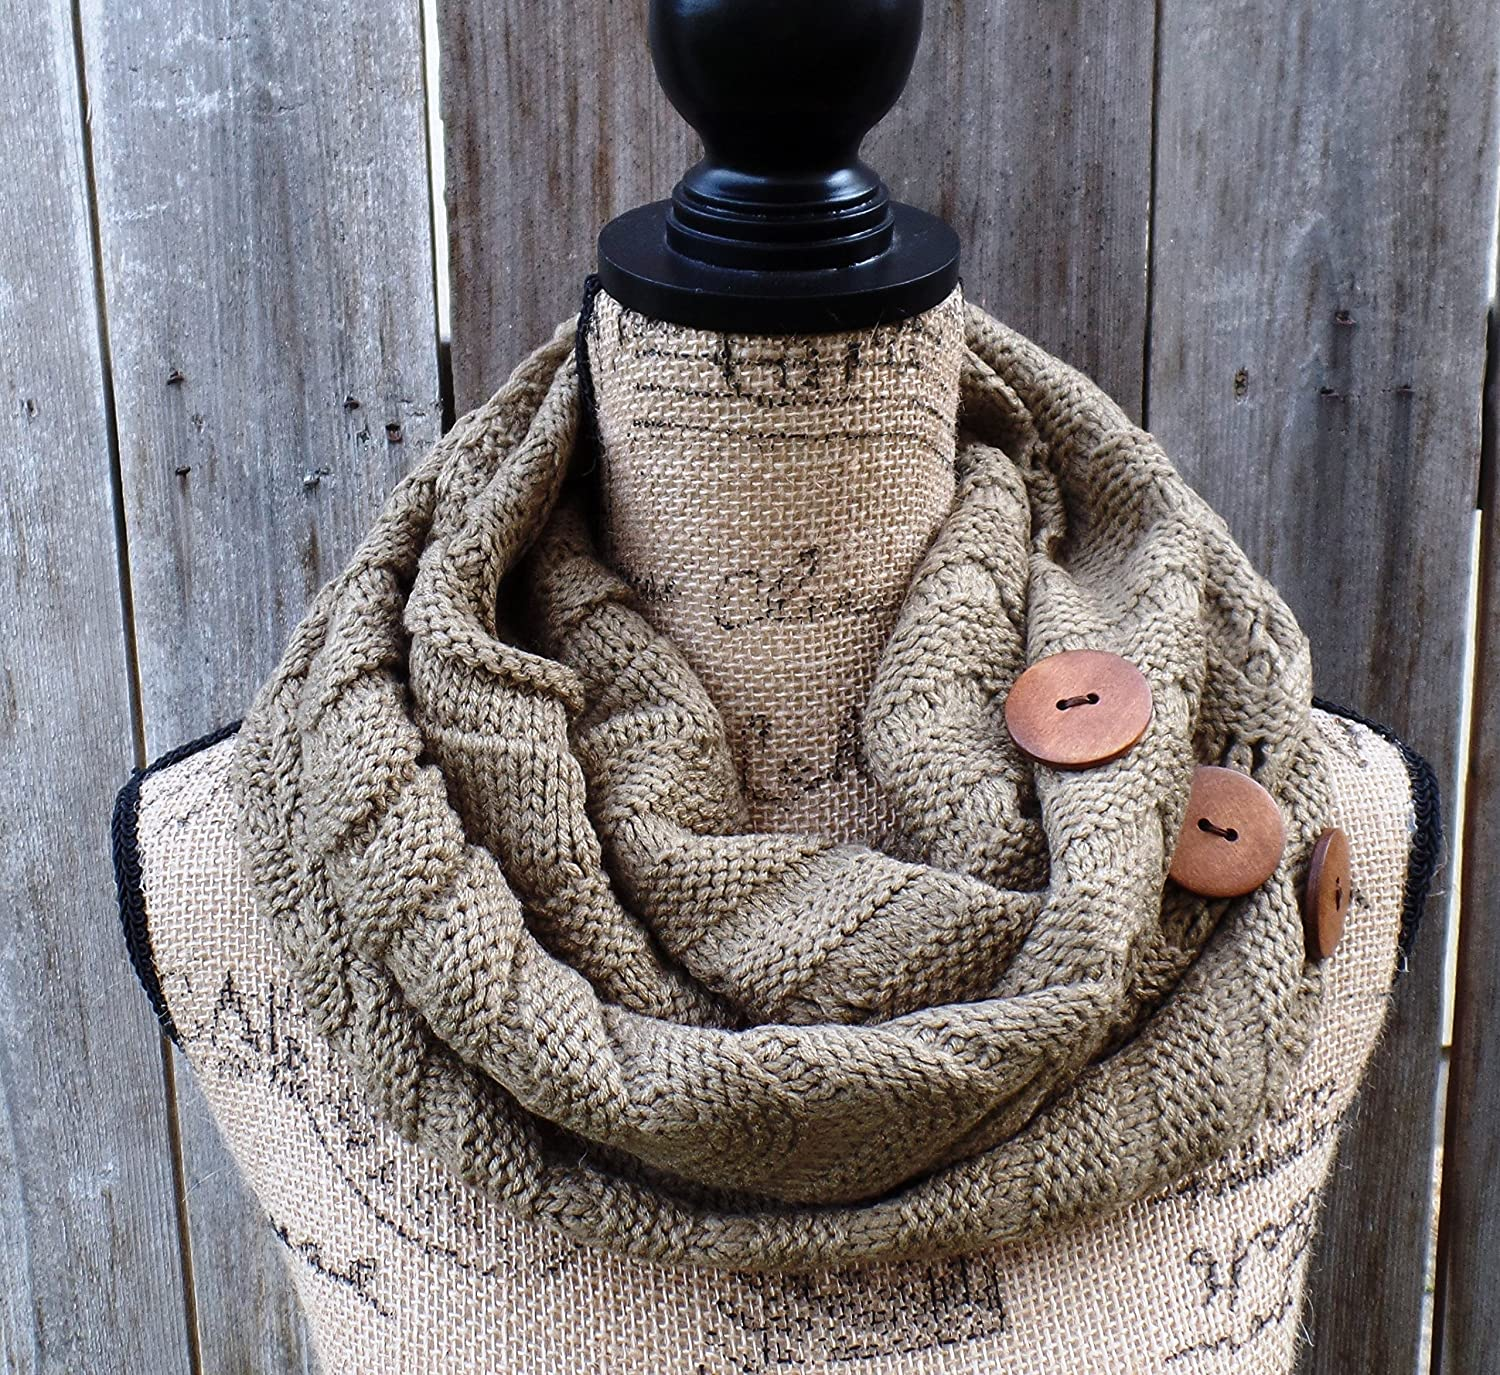 Mocha Infinity Knit Scarf With Wooden Buttons By Girl Co quality Max 87% OFF assurance Uptown